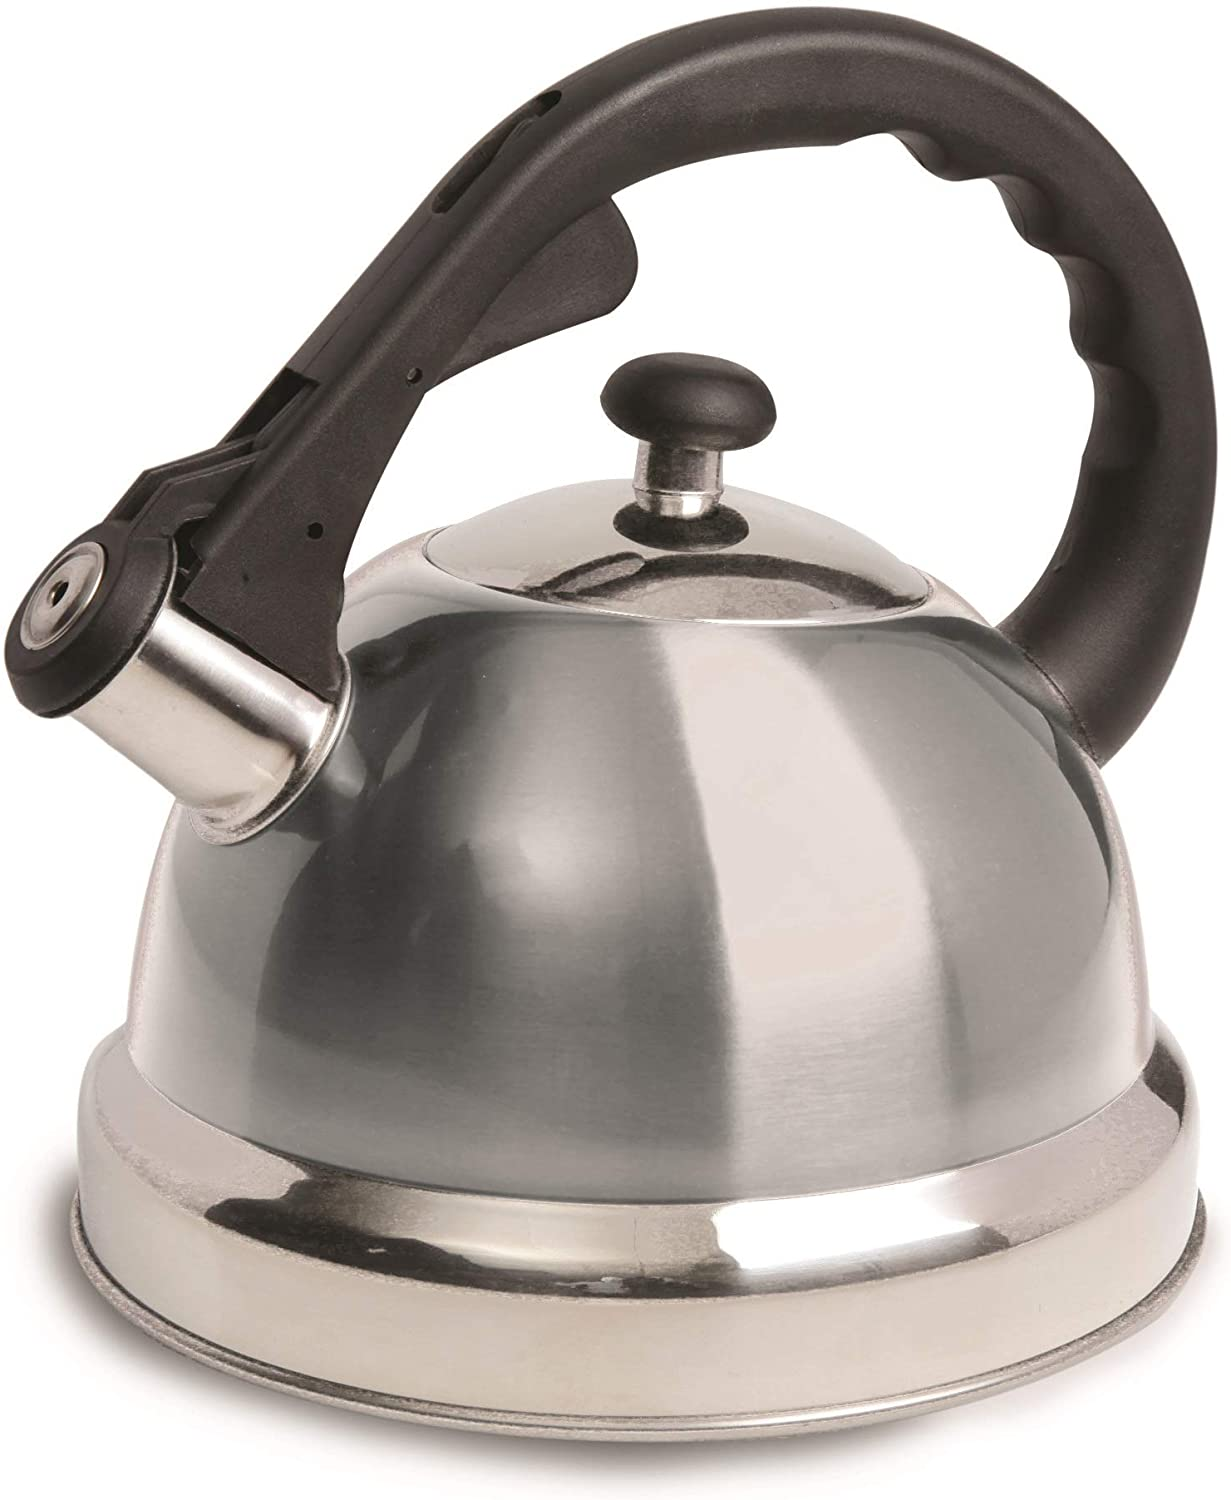 Mr Coffee Claredale Max 60% OFF Whistling Tea Max 88% OFF Brushed 2.2-Quart Sta Kettle